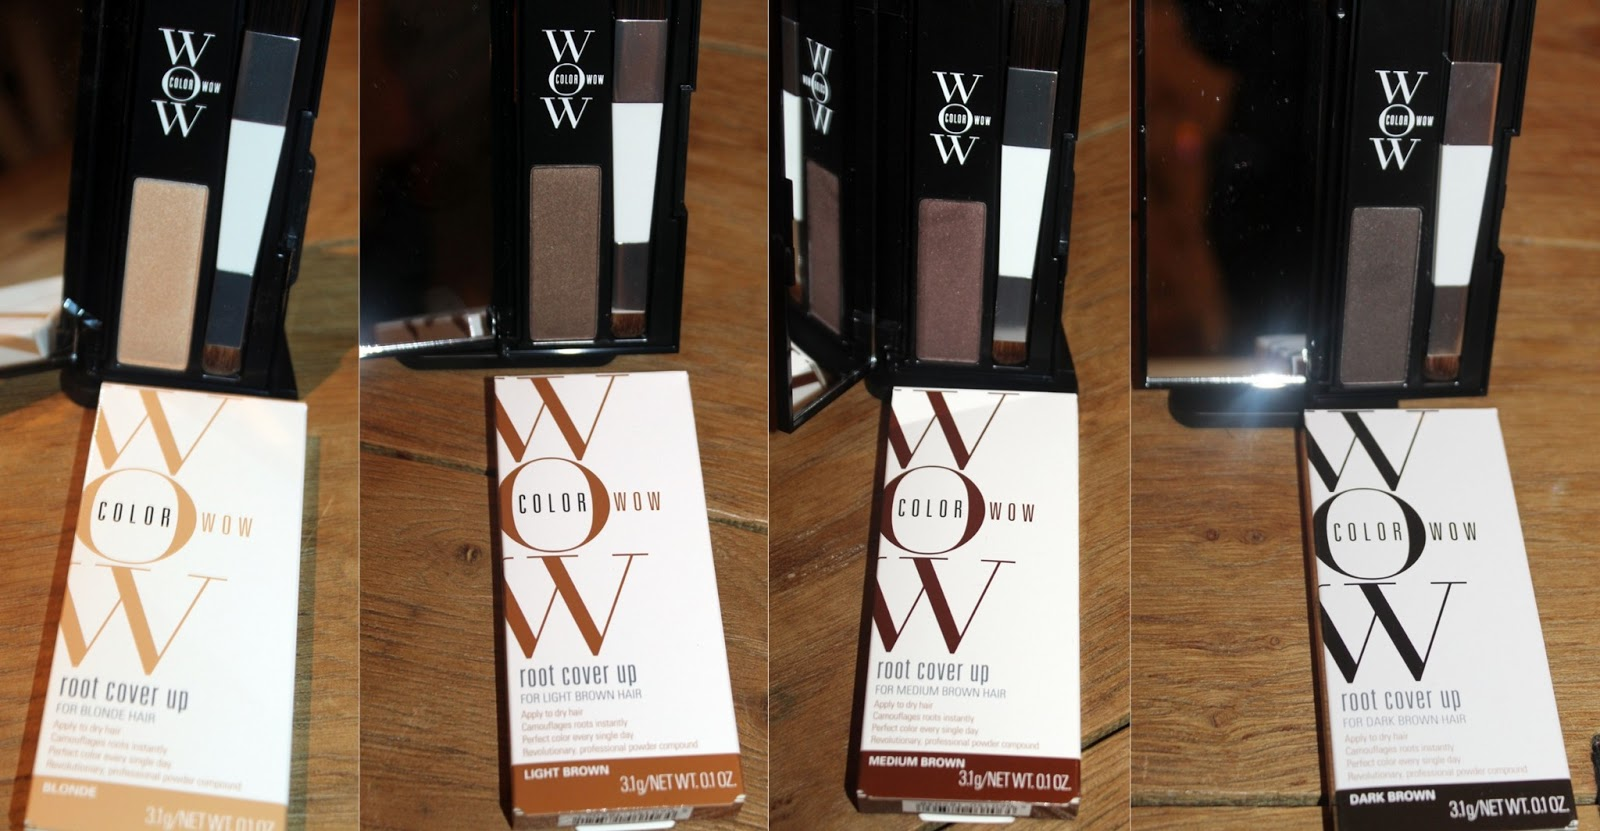 Color Wow Root Cover Up The Next Hair Innovation